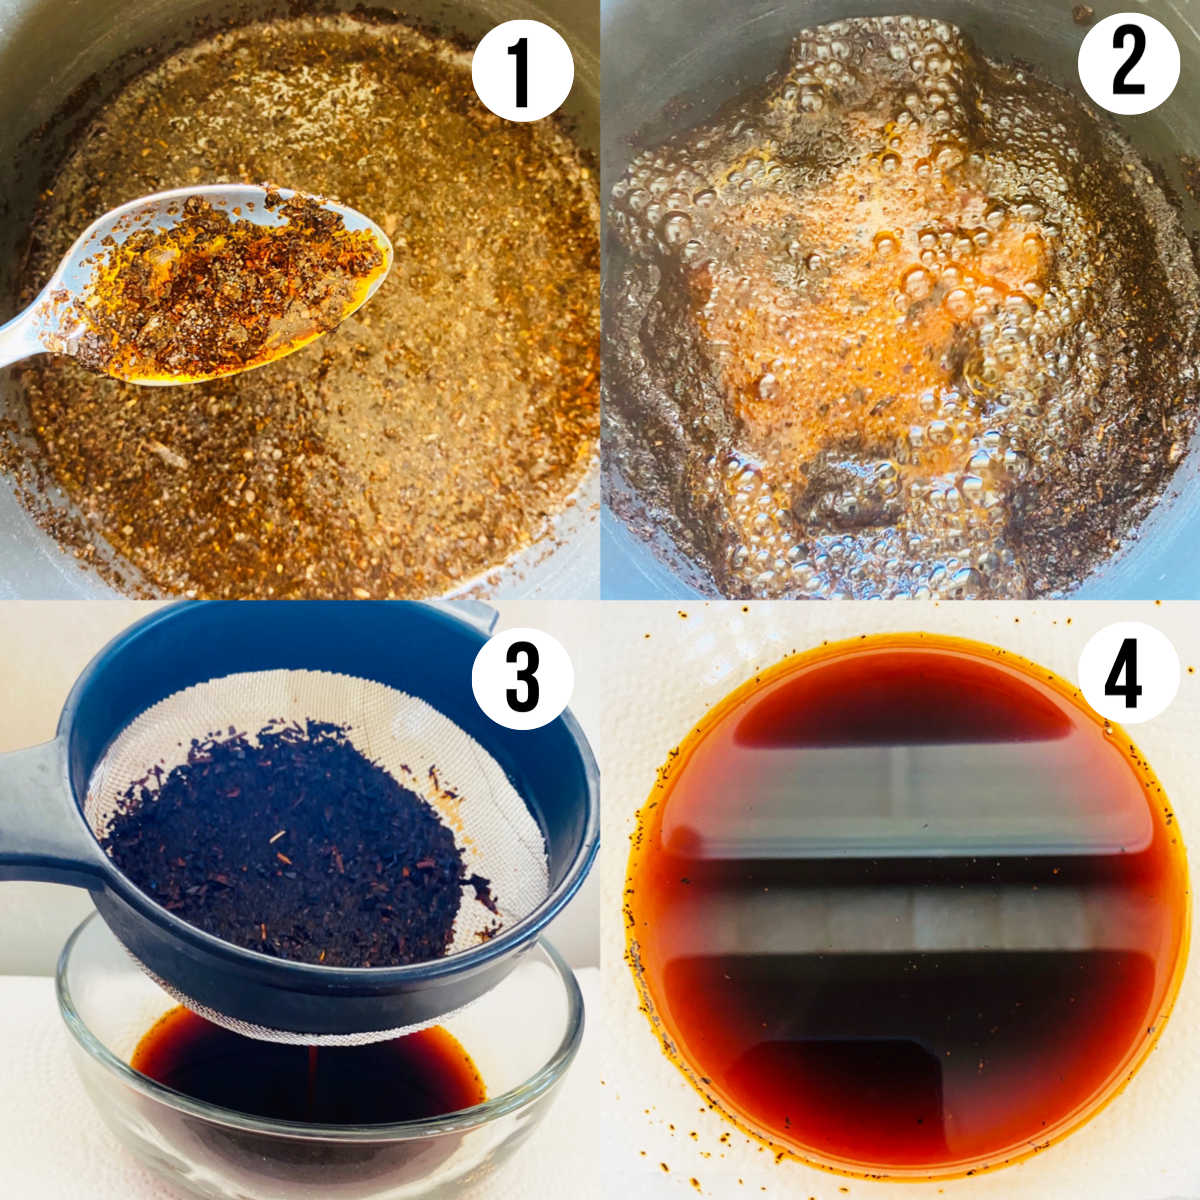 thai tea ice cream process shots 1-4